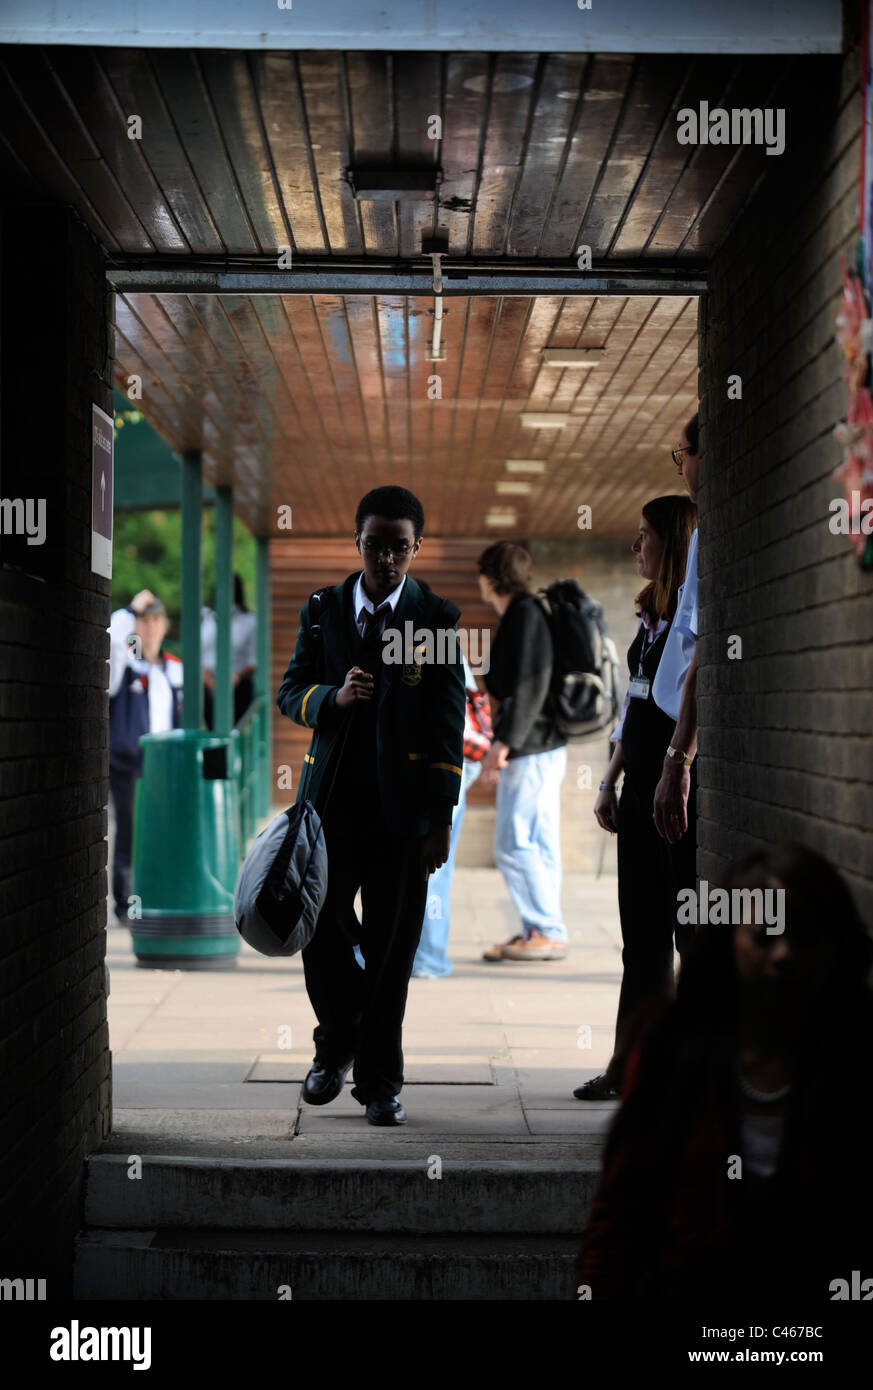 A pupil at a secondary school UK - Stock Image